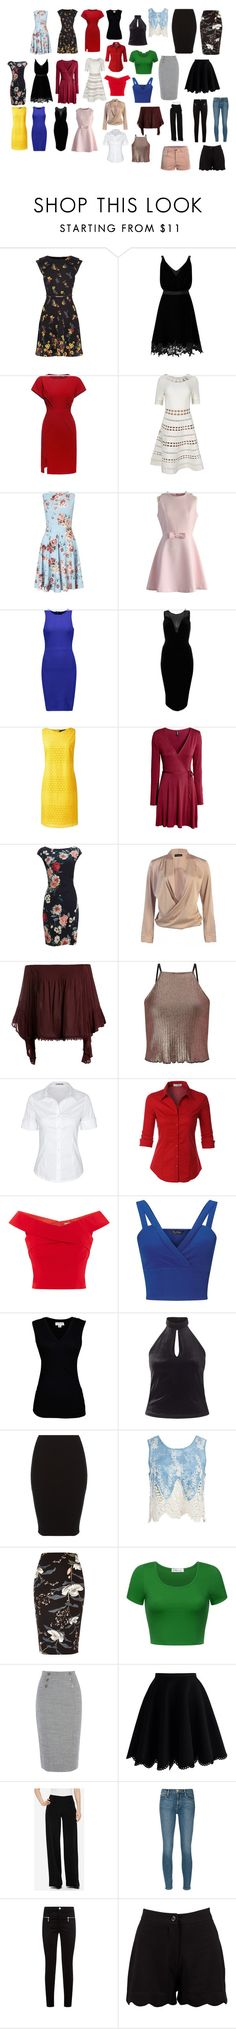 """""""Shopping Spree"""" by mnmaier on Polyvore featuring Miss Selfridge, Chicwish, Line, River Island, Lands' End, Sans Souci, LE3NO, Velvet by Graham & Spencer, The Limited and Frame Denim"""